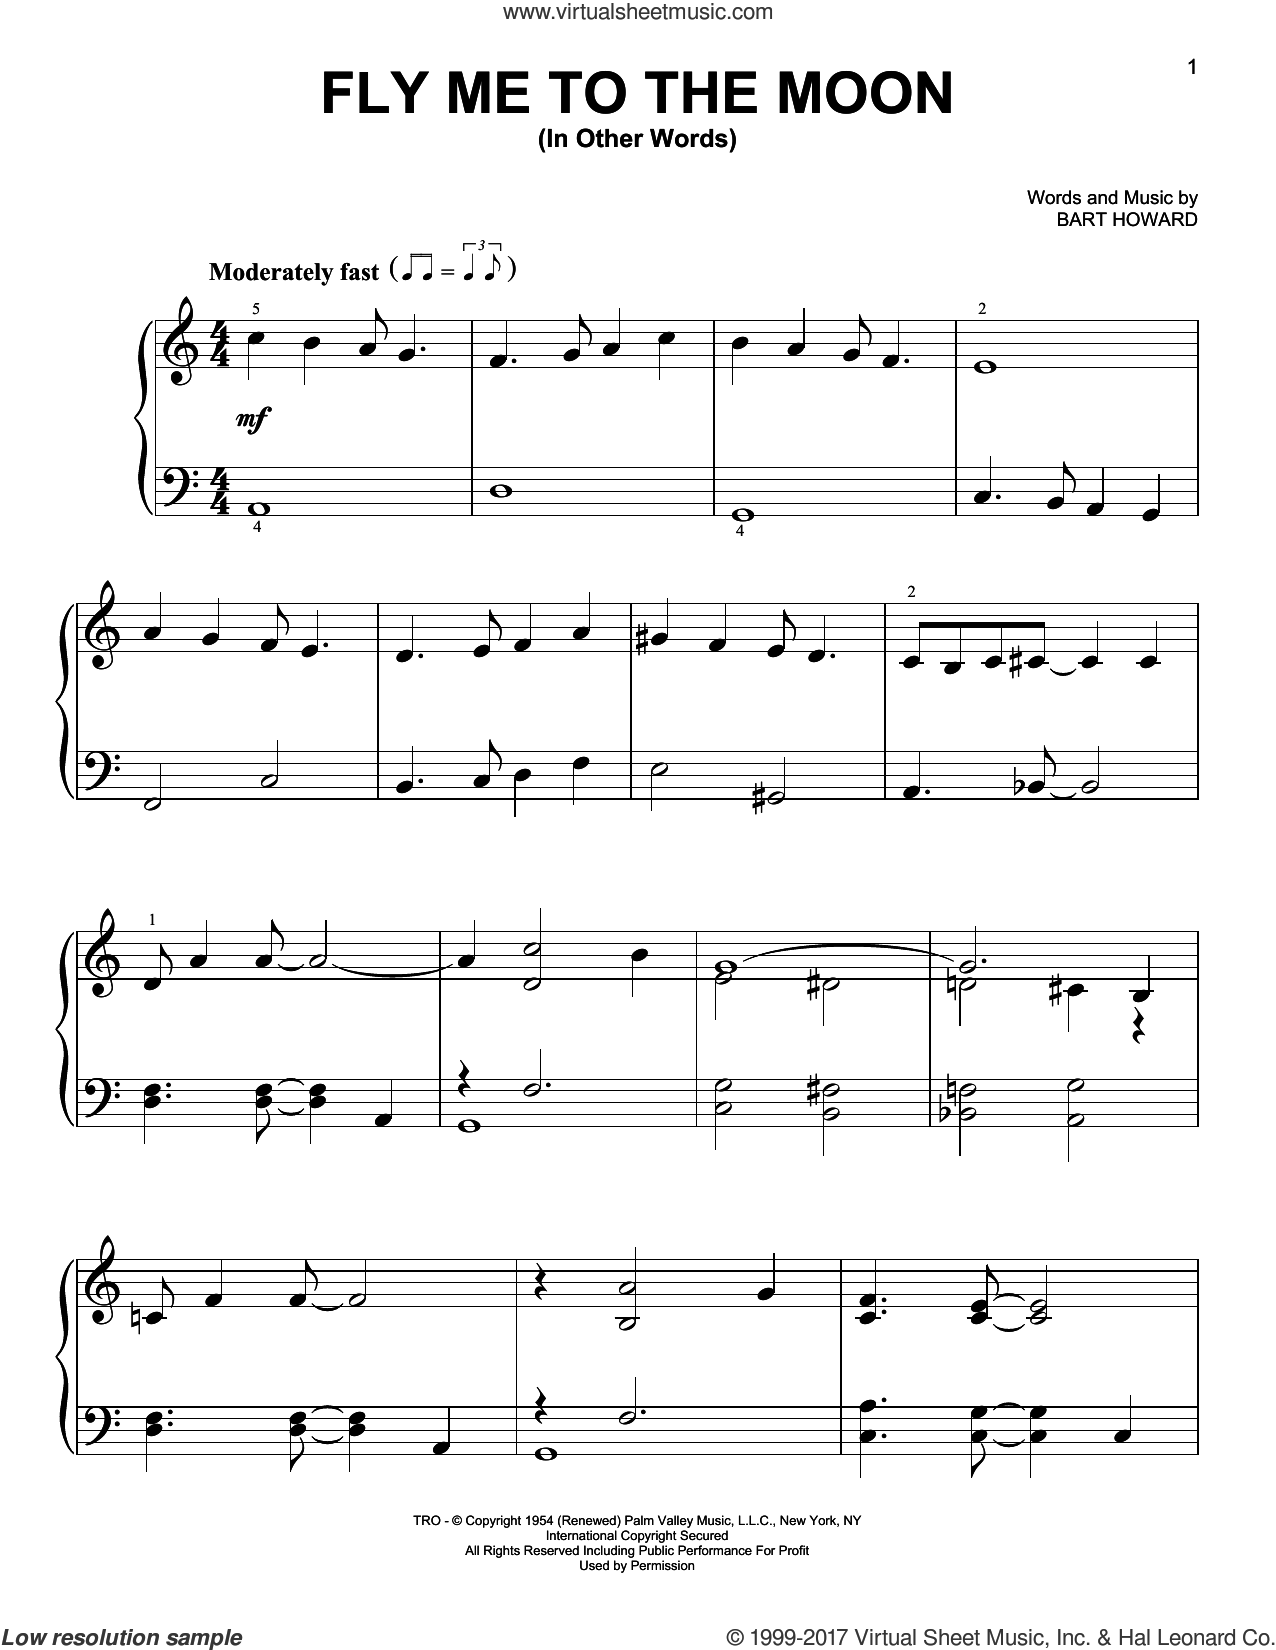 Fly Me To The Moon (In Other Words) sheet music for piano solo by Frank Sinatra, Tony Bennett and BART HOWARD, easy skill level